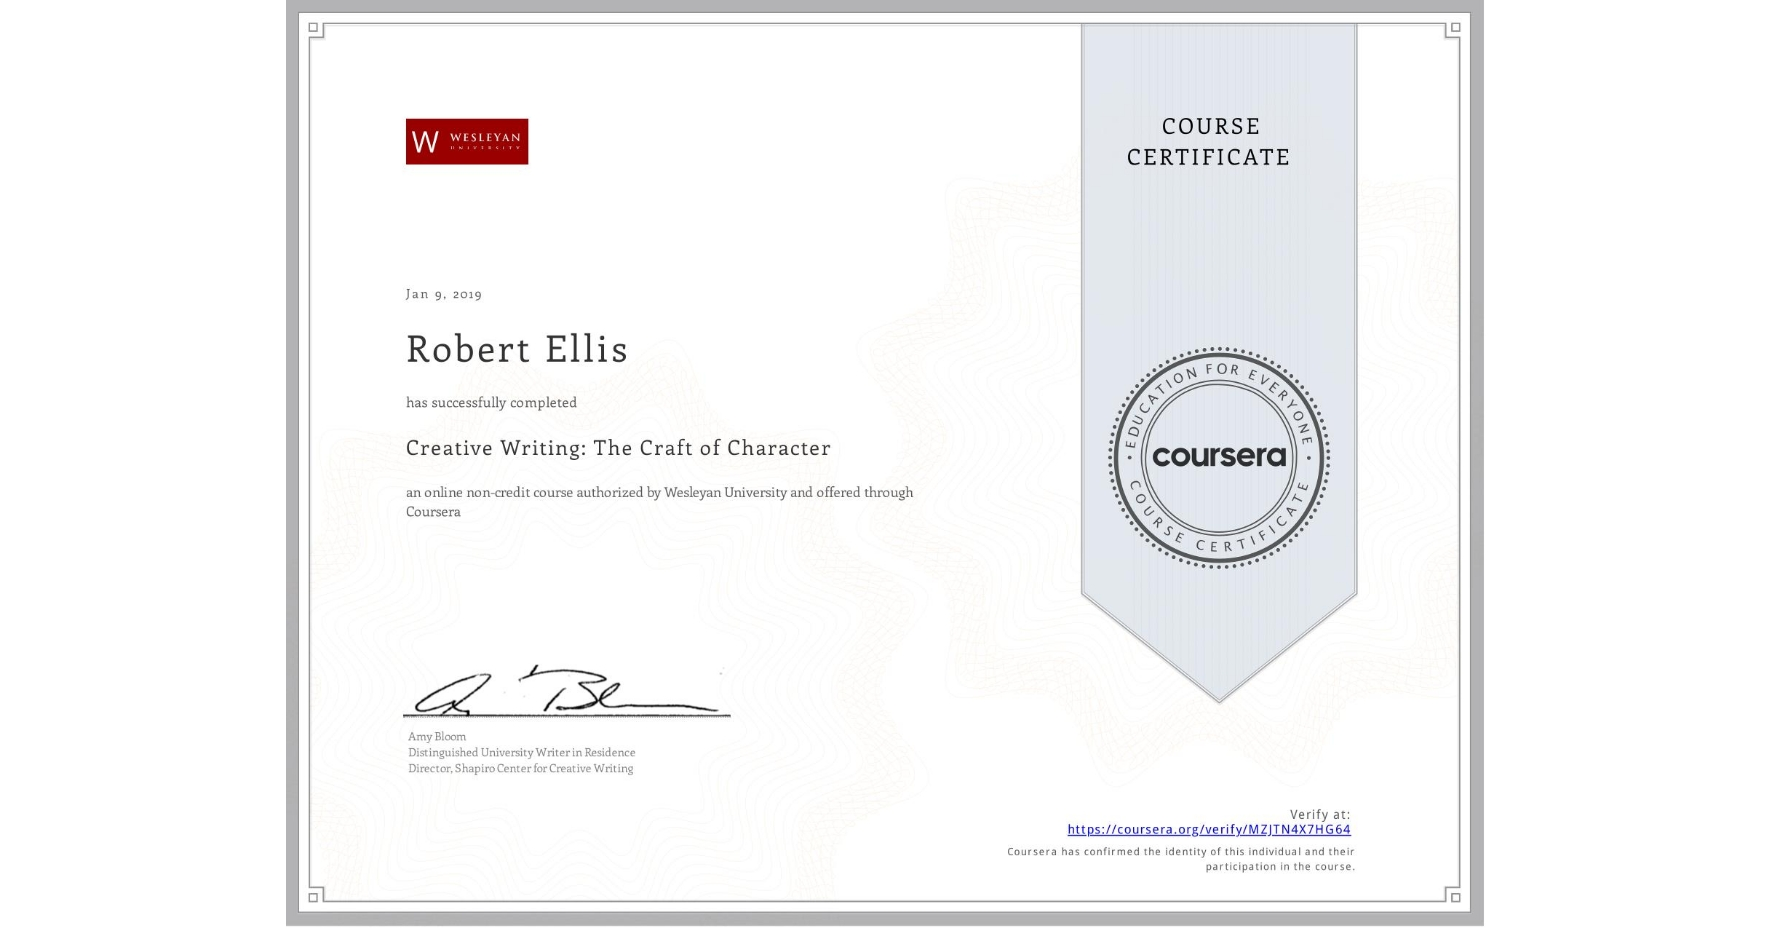 View certificate for Robert Ellis, Creative Writing: The Craft of Character, an online non-credit course authorized by Wesleyan University and offered through Coursera